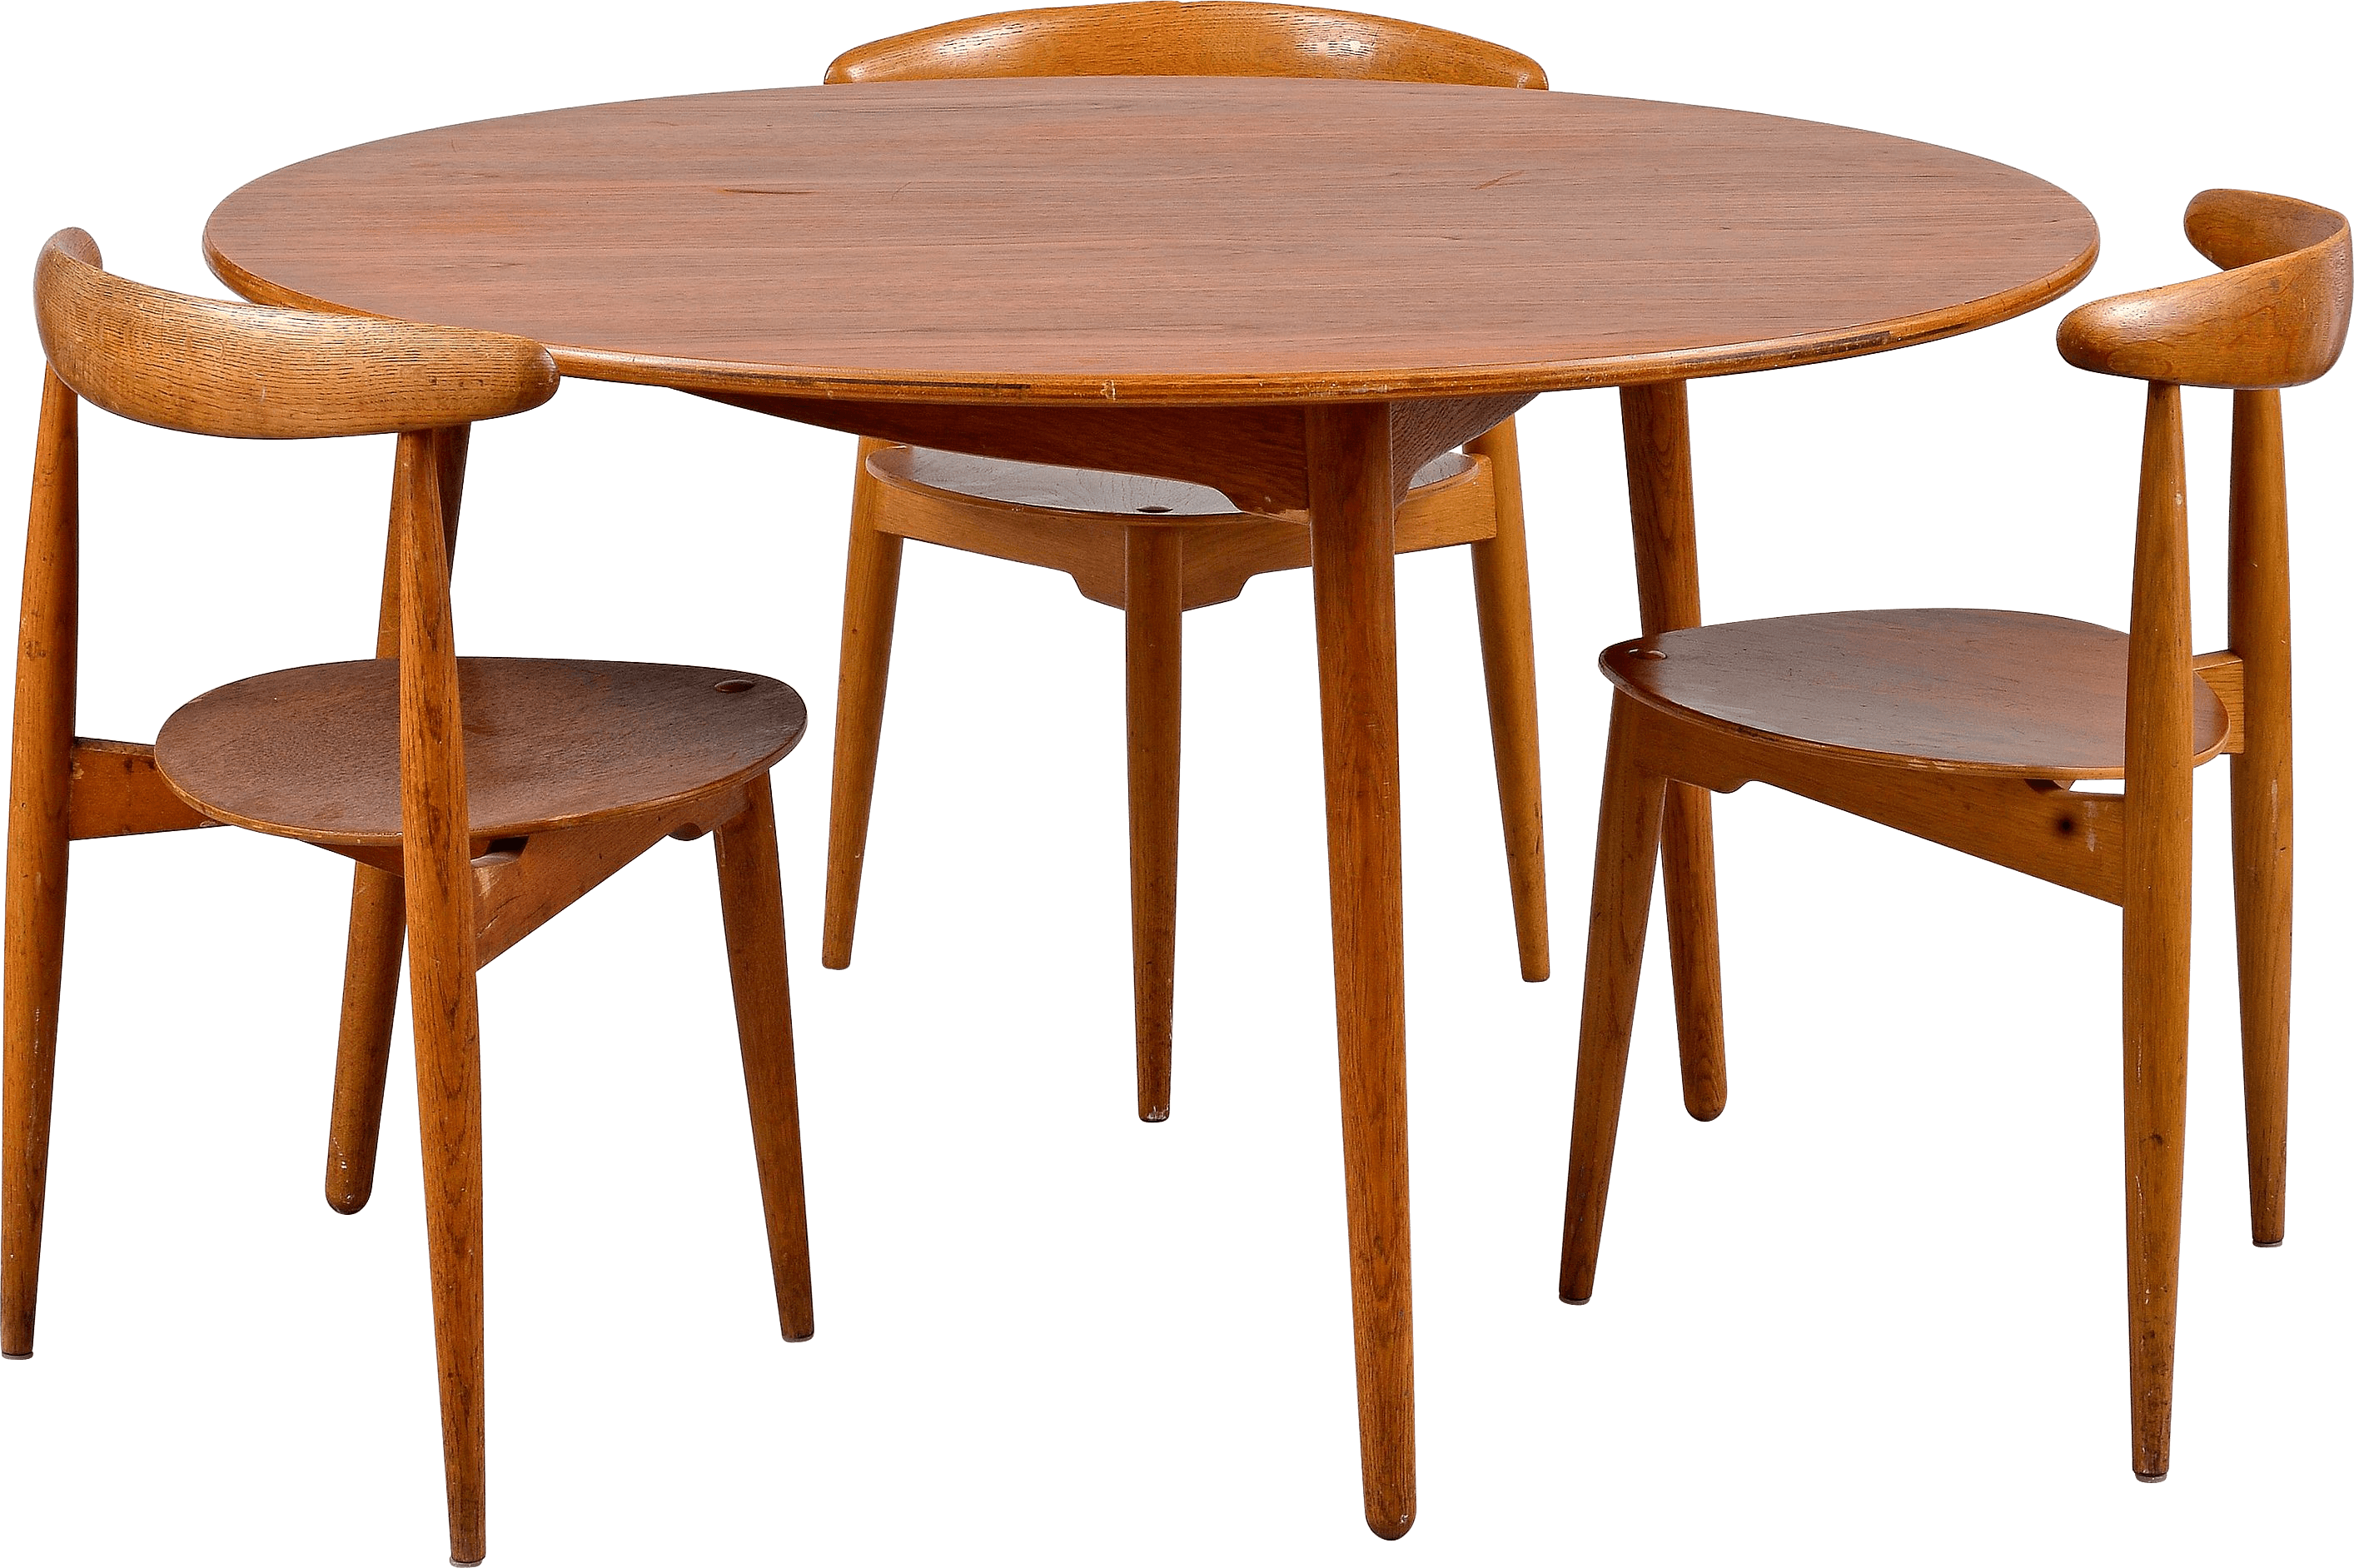 High Quality Dining Room Tables Furniture Png Transparent Furniture Png Images Pluspng